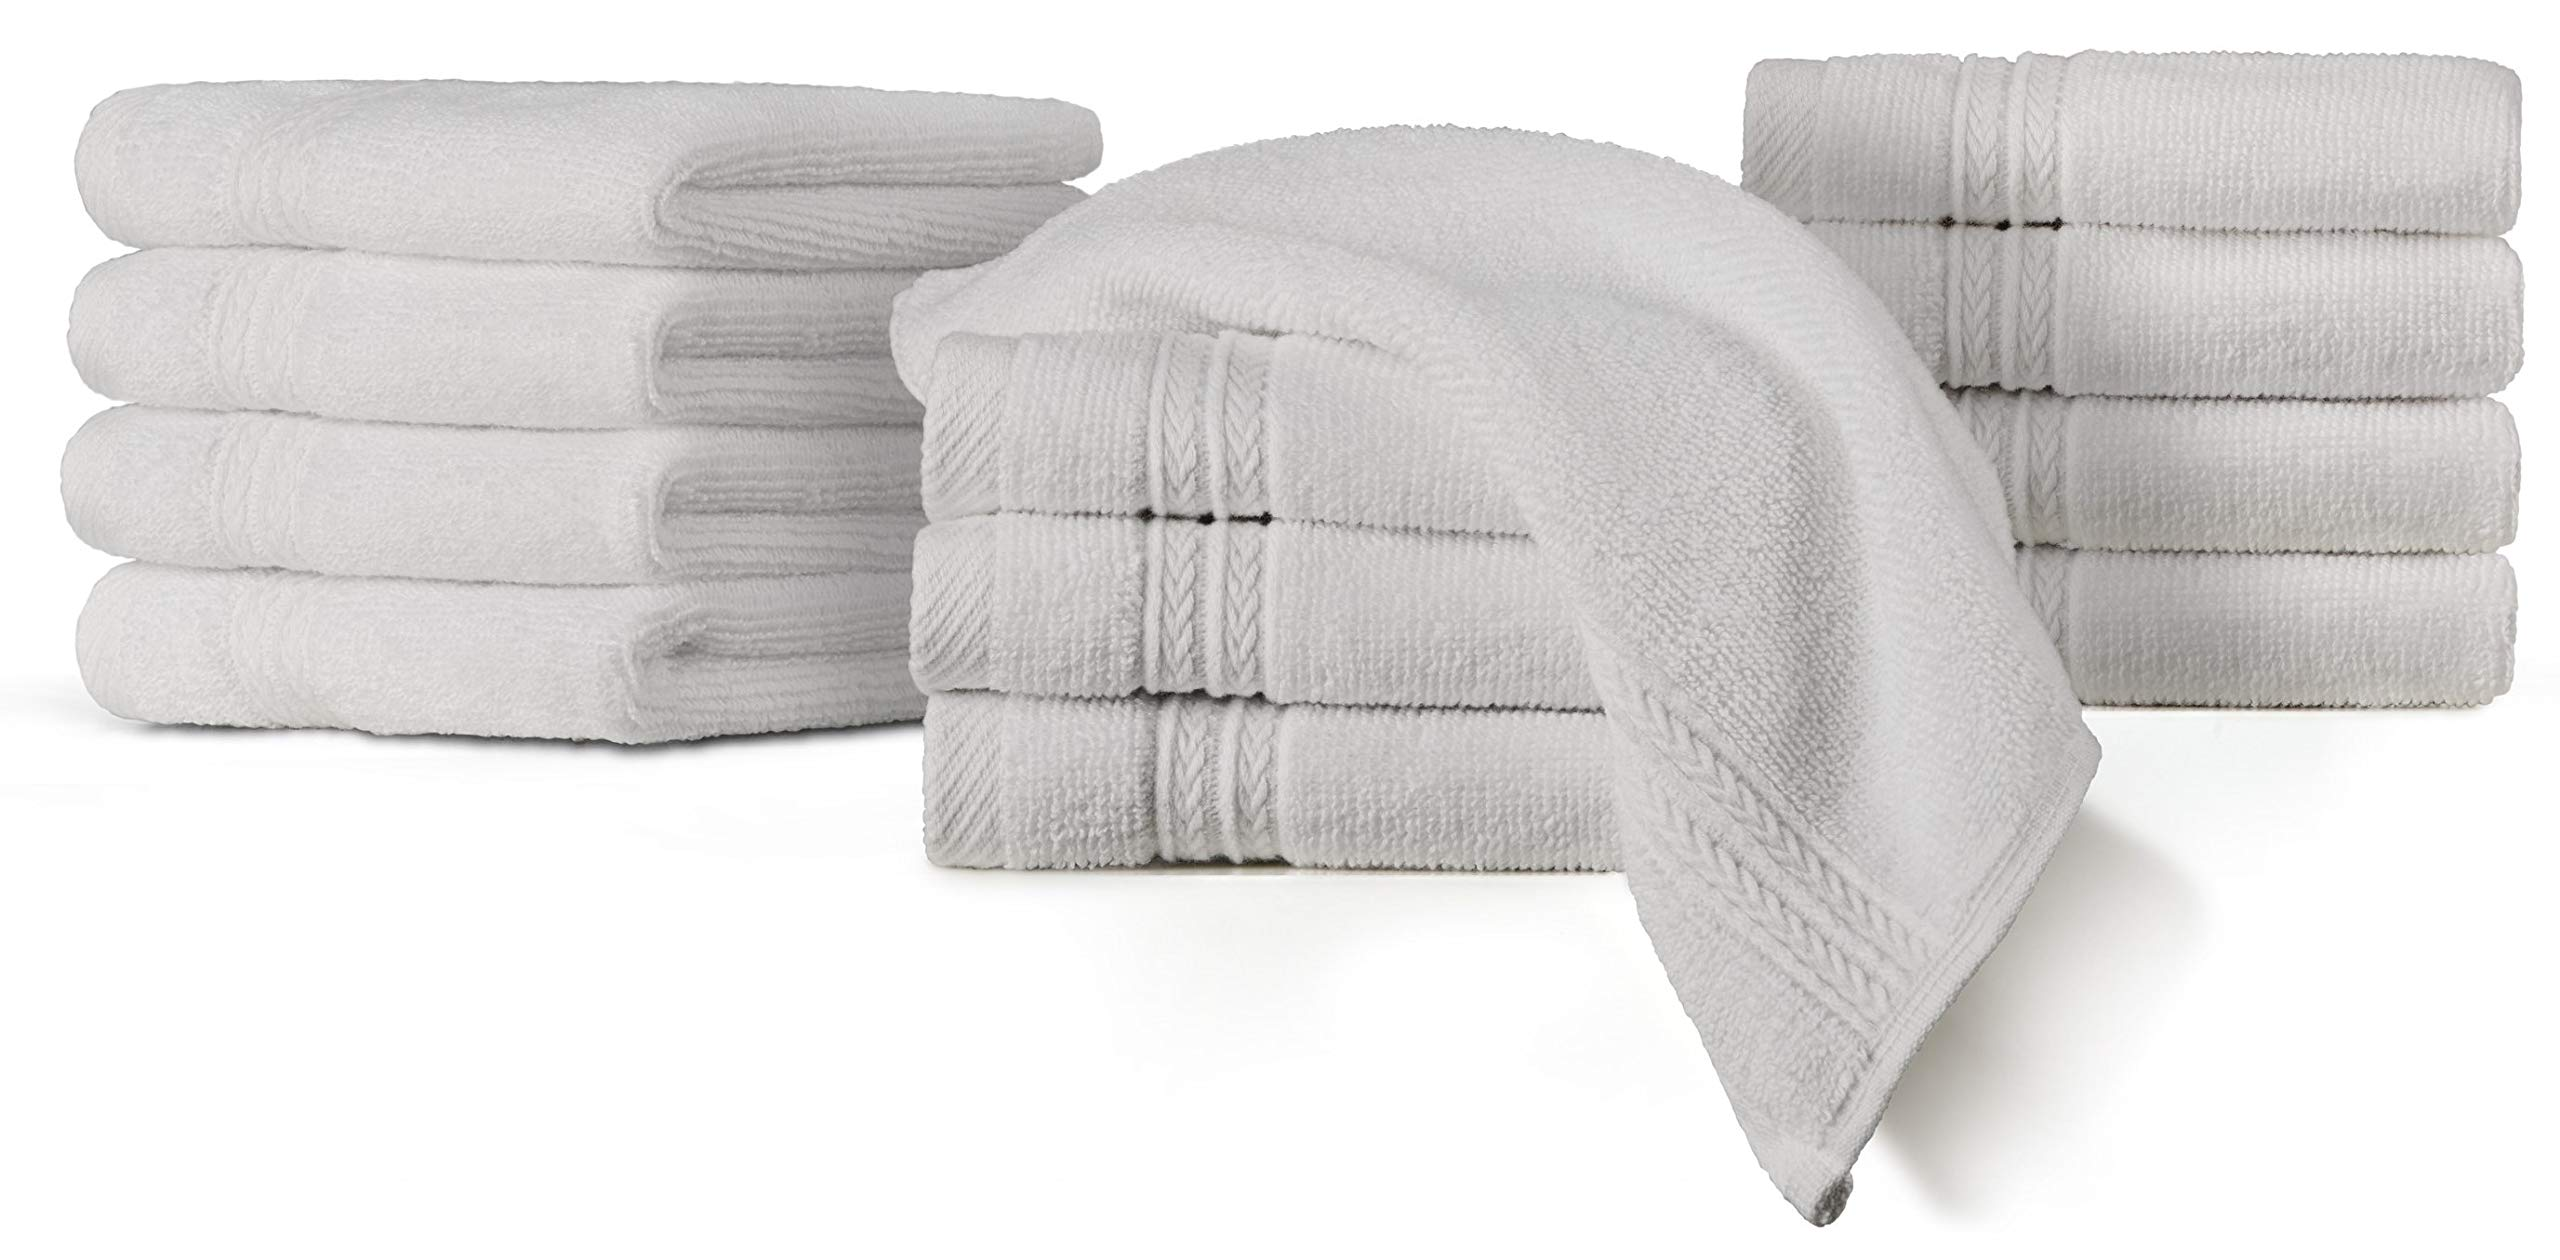 TowelPro Luxury Premium Super Soft 100% Cotton Highly Absorbent Machine Washable Multi-Purpose, Hotel, Spa, Home, Wash Cloths Set of 12 Sport and Workout Towels 12'' X 12'' (White)